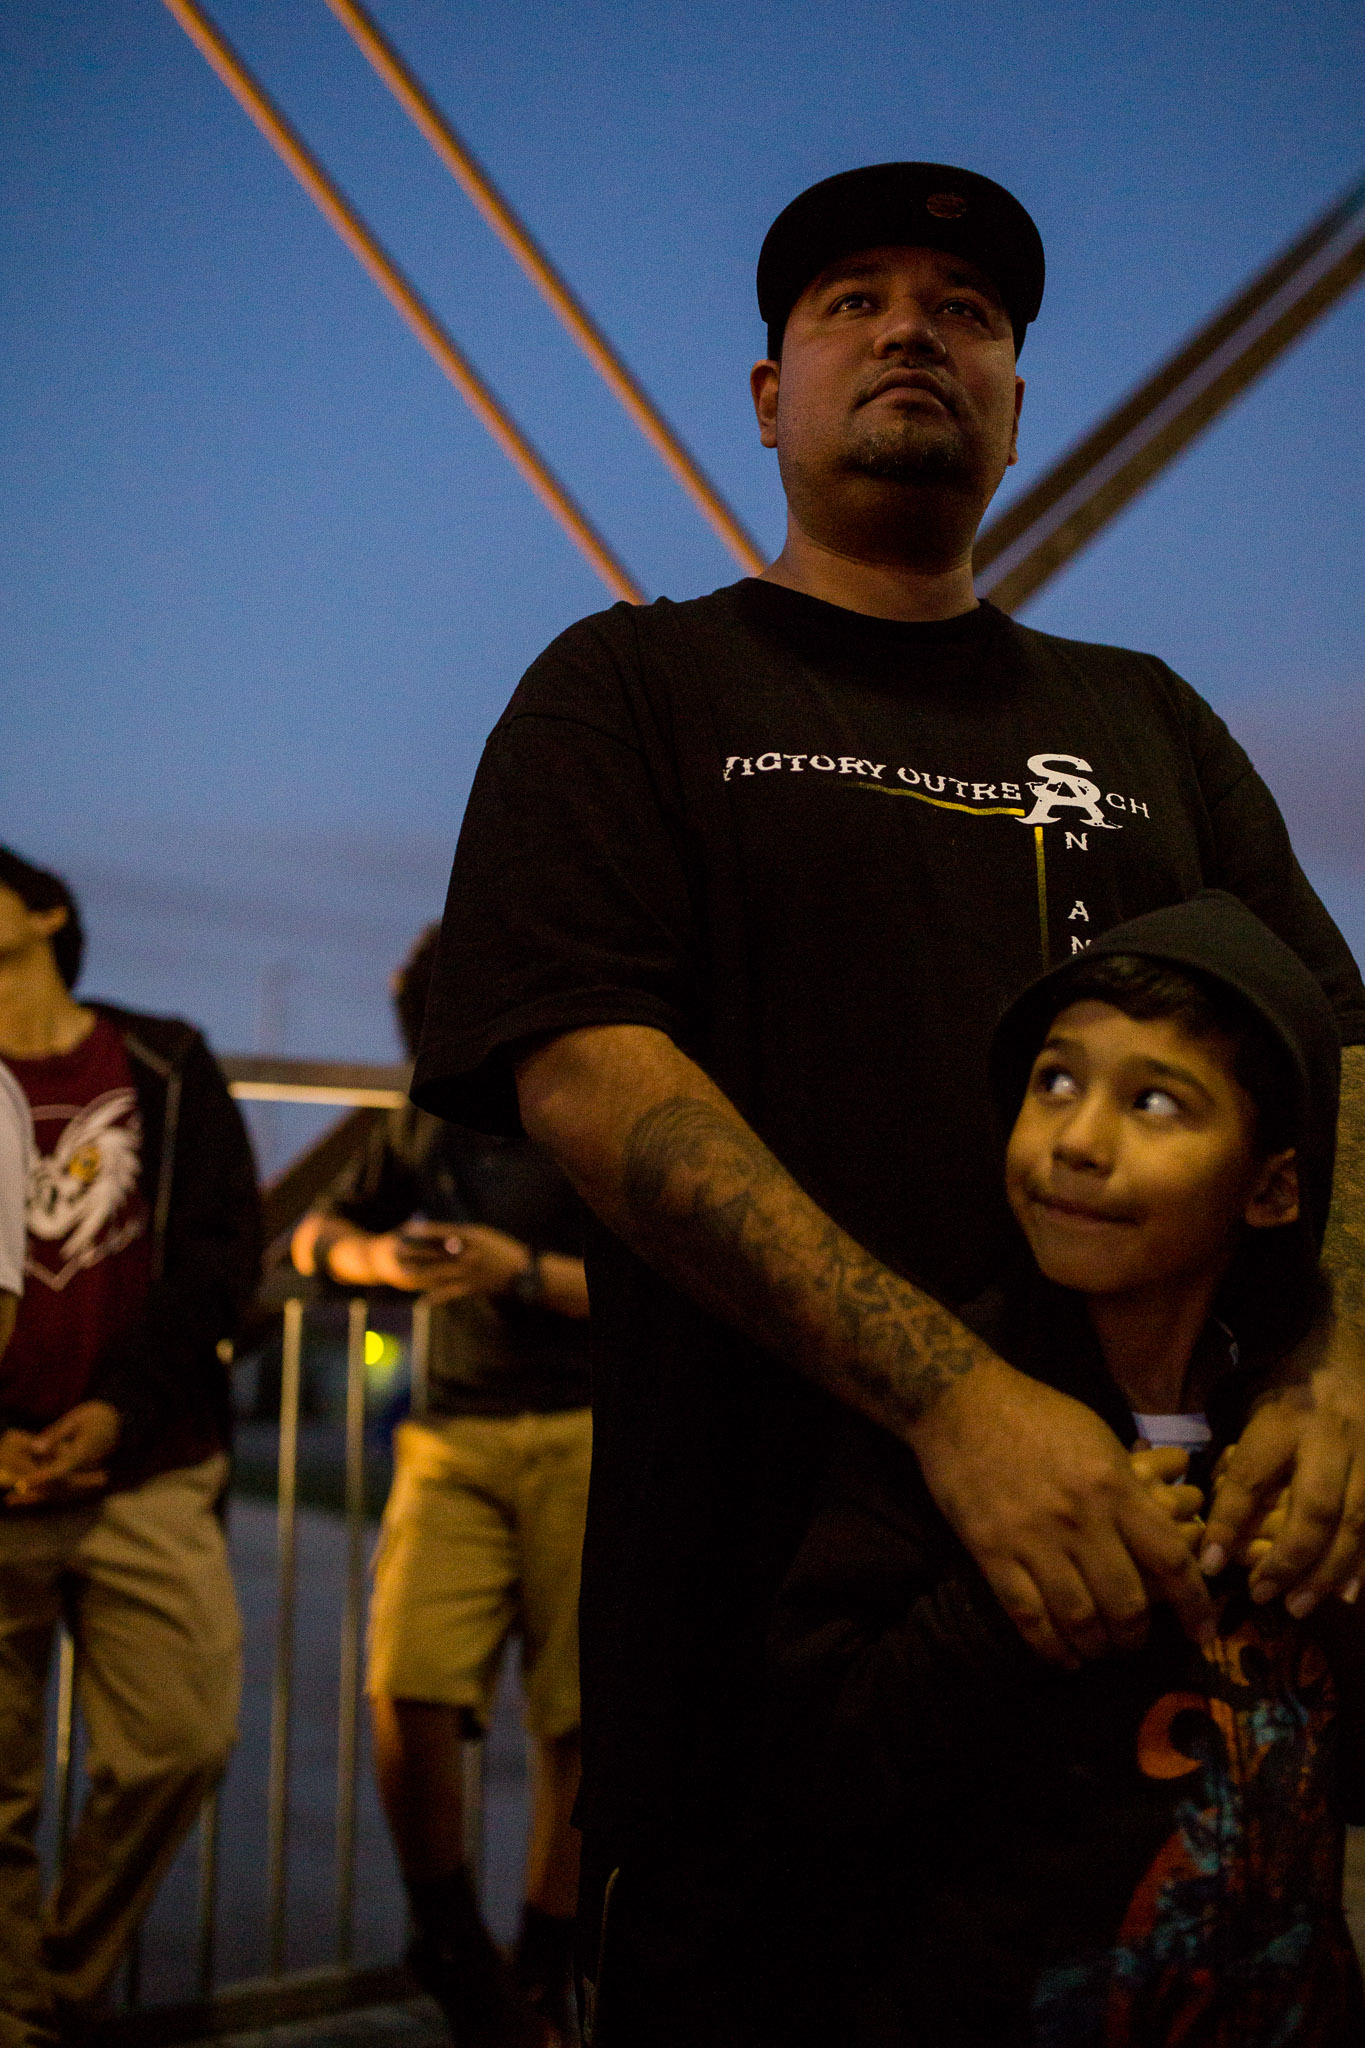 Eastside residents Mark Espinosa and his son Mark Jr, 6, attend the press event. Photo by Scott Ball.